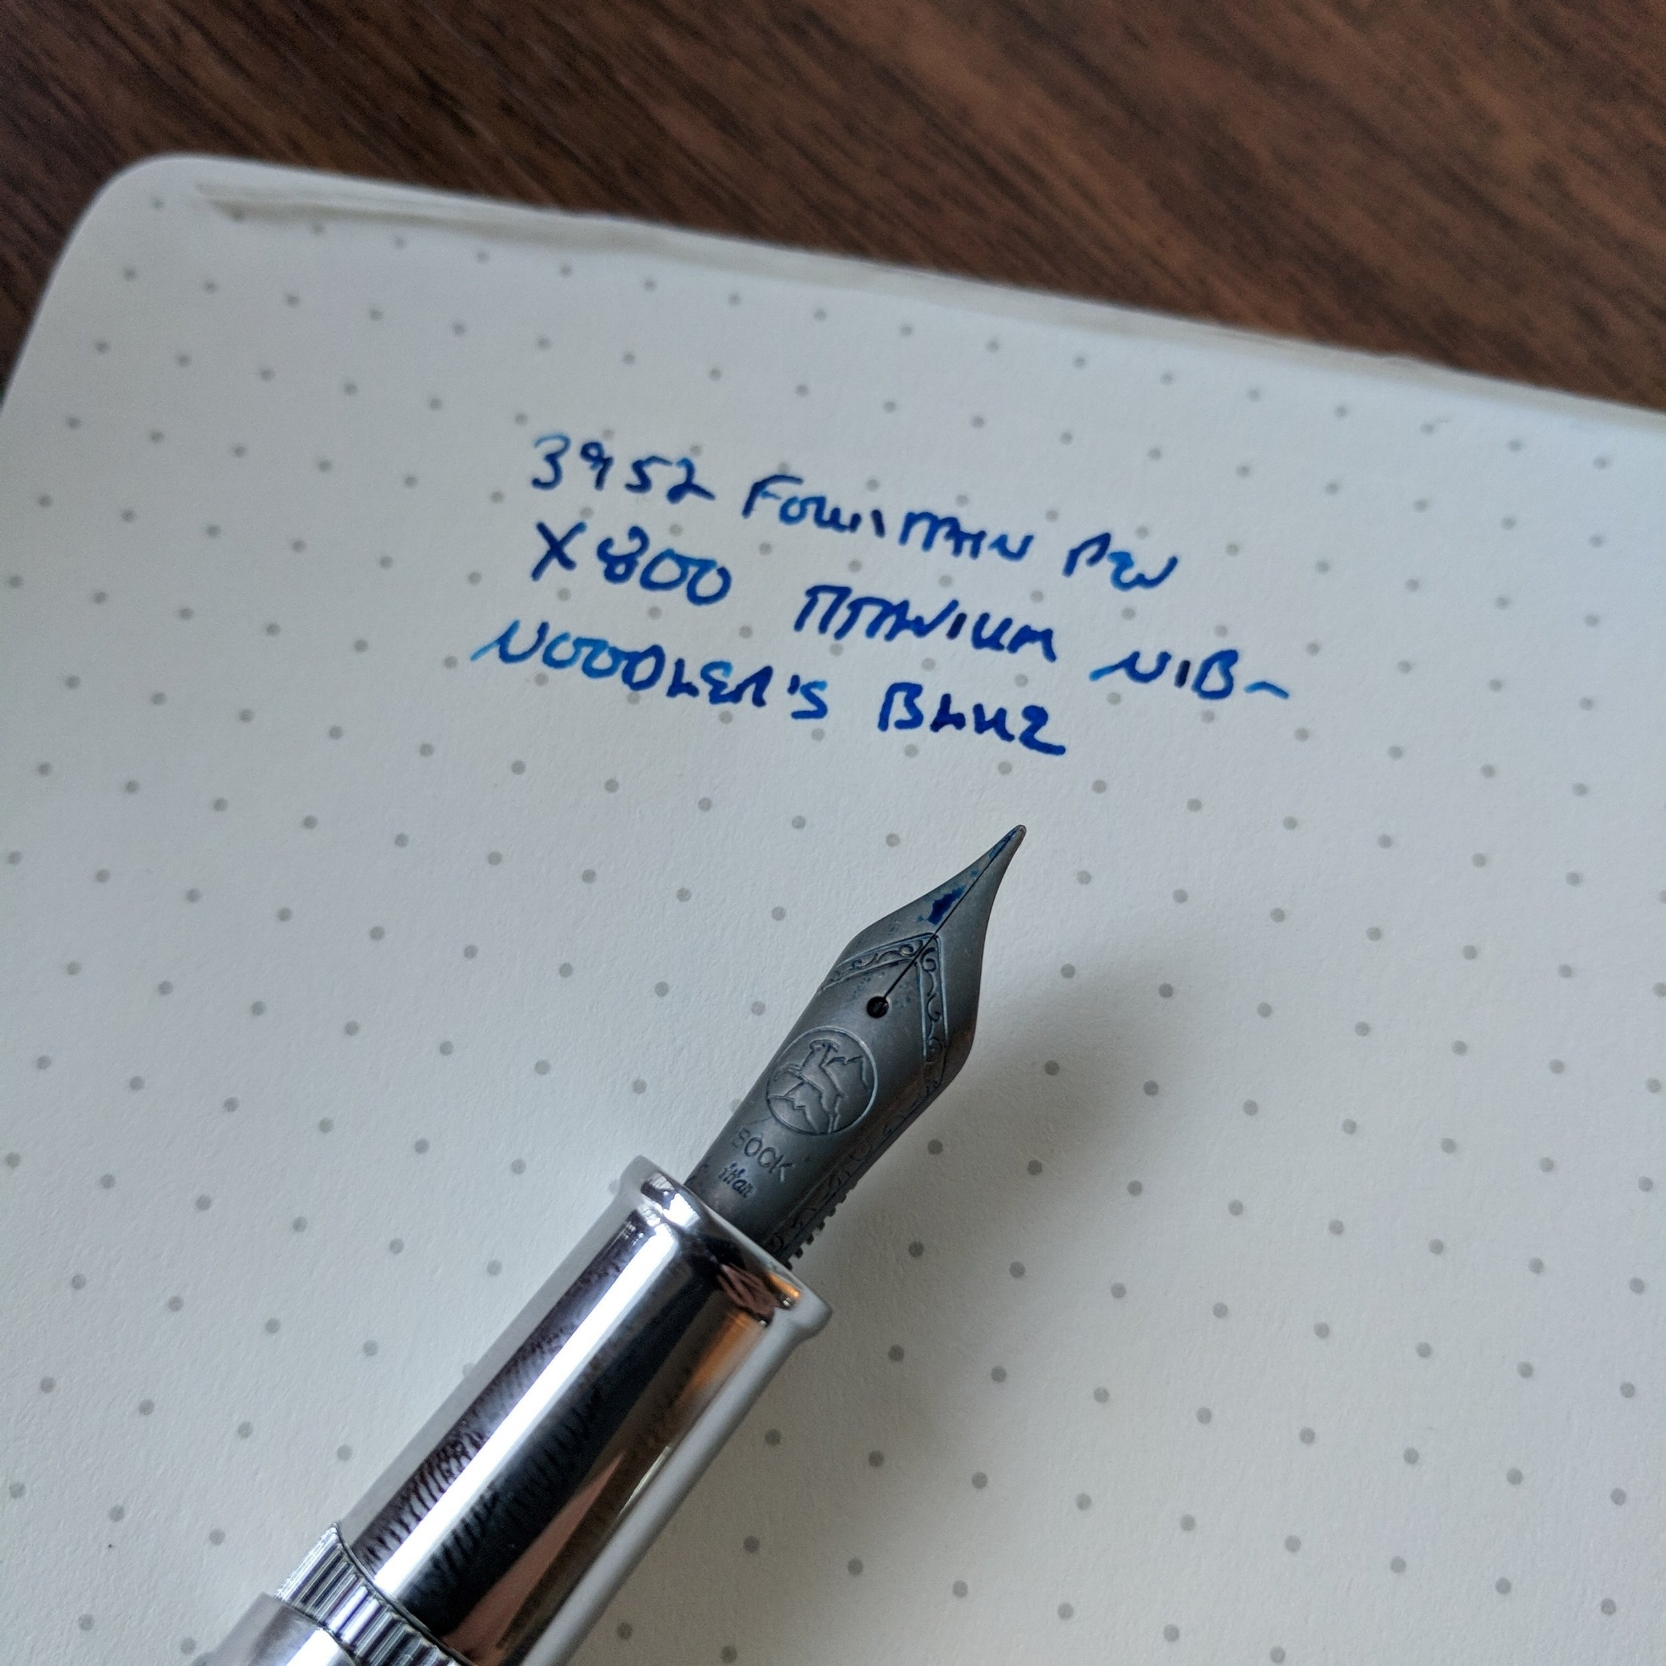 If you want to swap a Titanium nib into this pen, you probably will want to use the feed that came with the Ti nib unit, since Titanium nibs generally have heavier flow and the feed channels are cut differently.